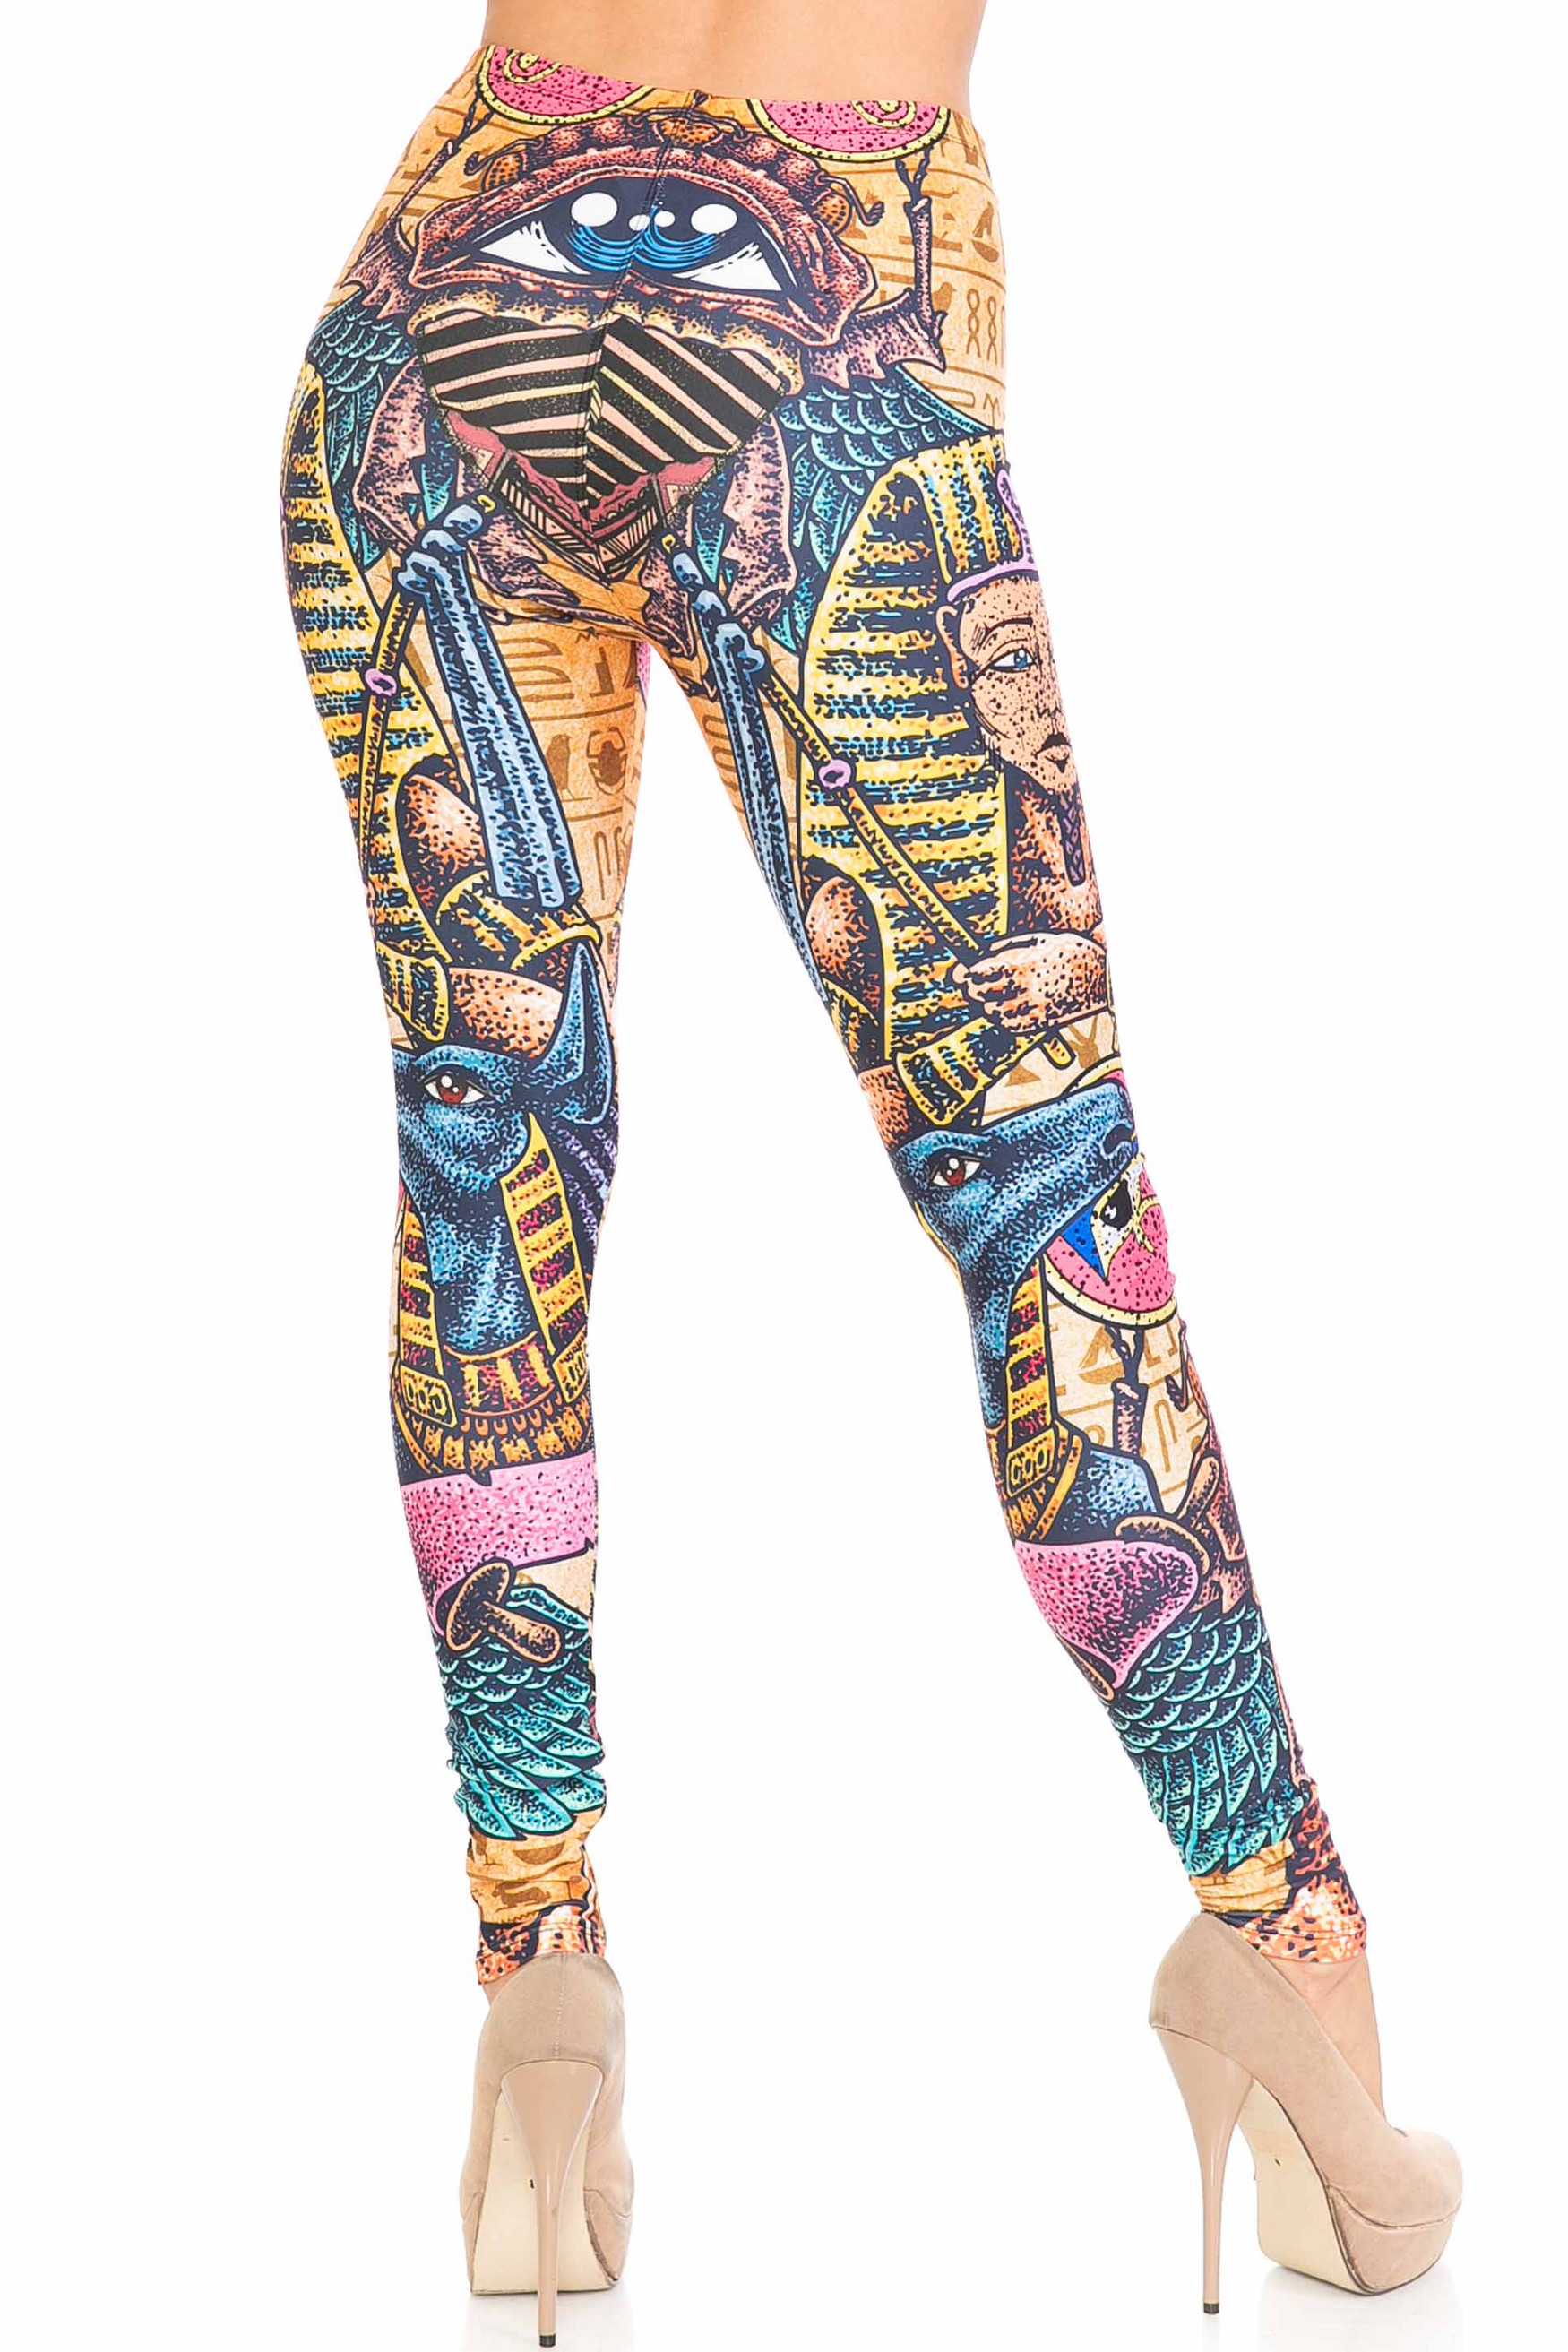 Creamy Soft Gods of Egypt Leggings - USA Fashion™